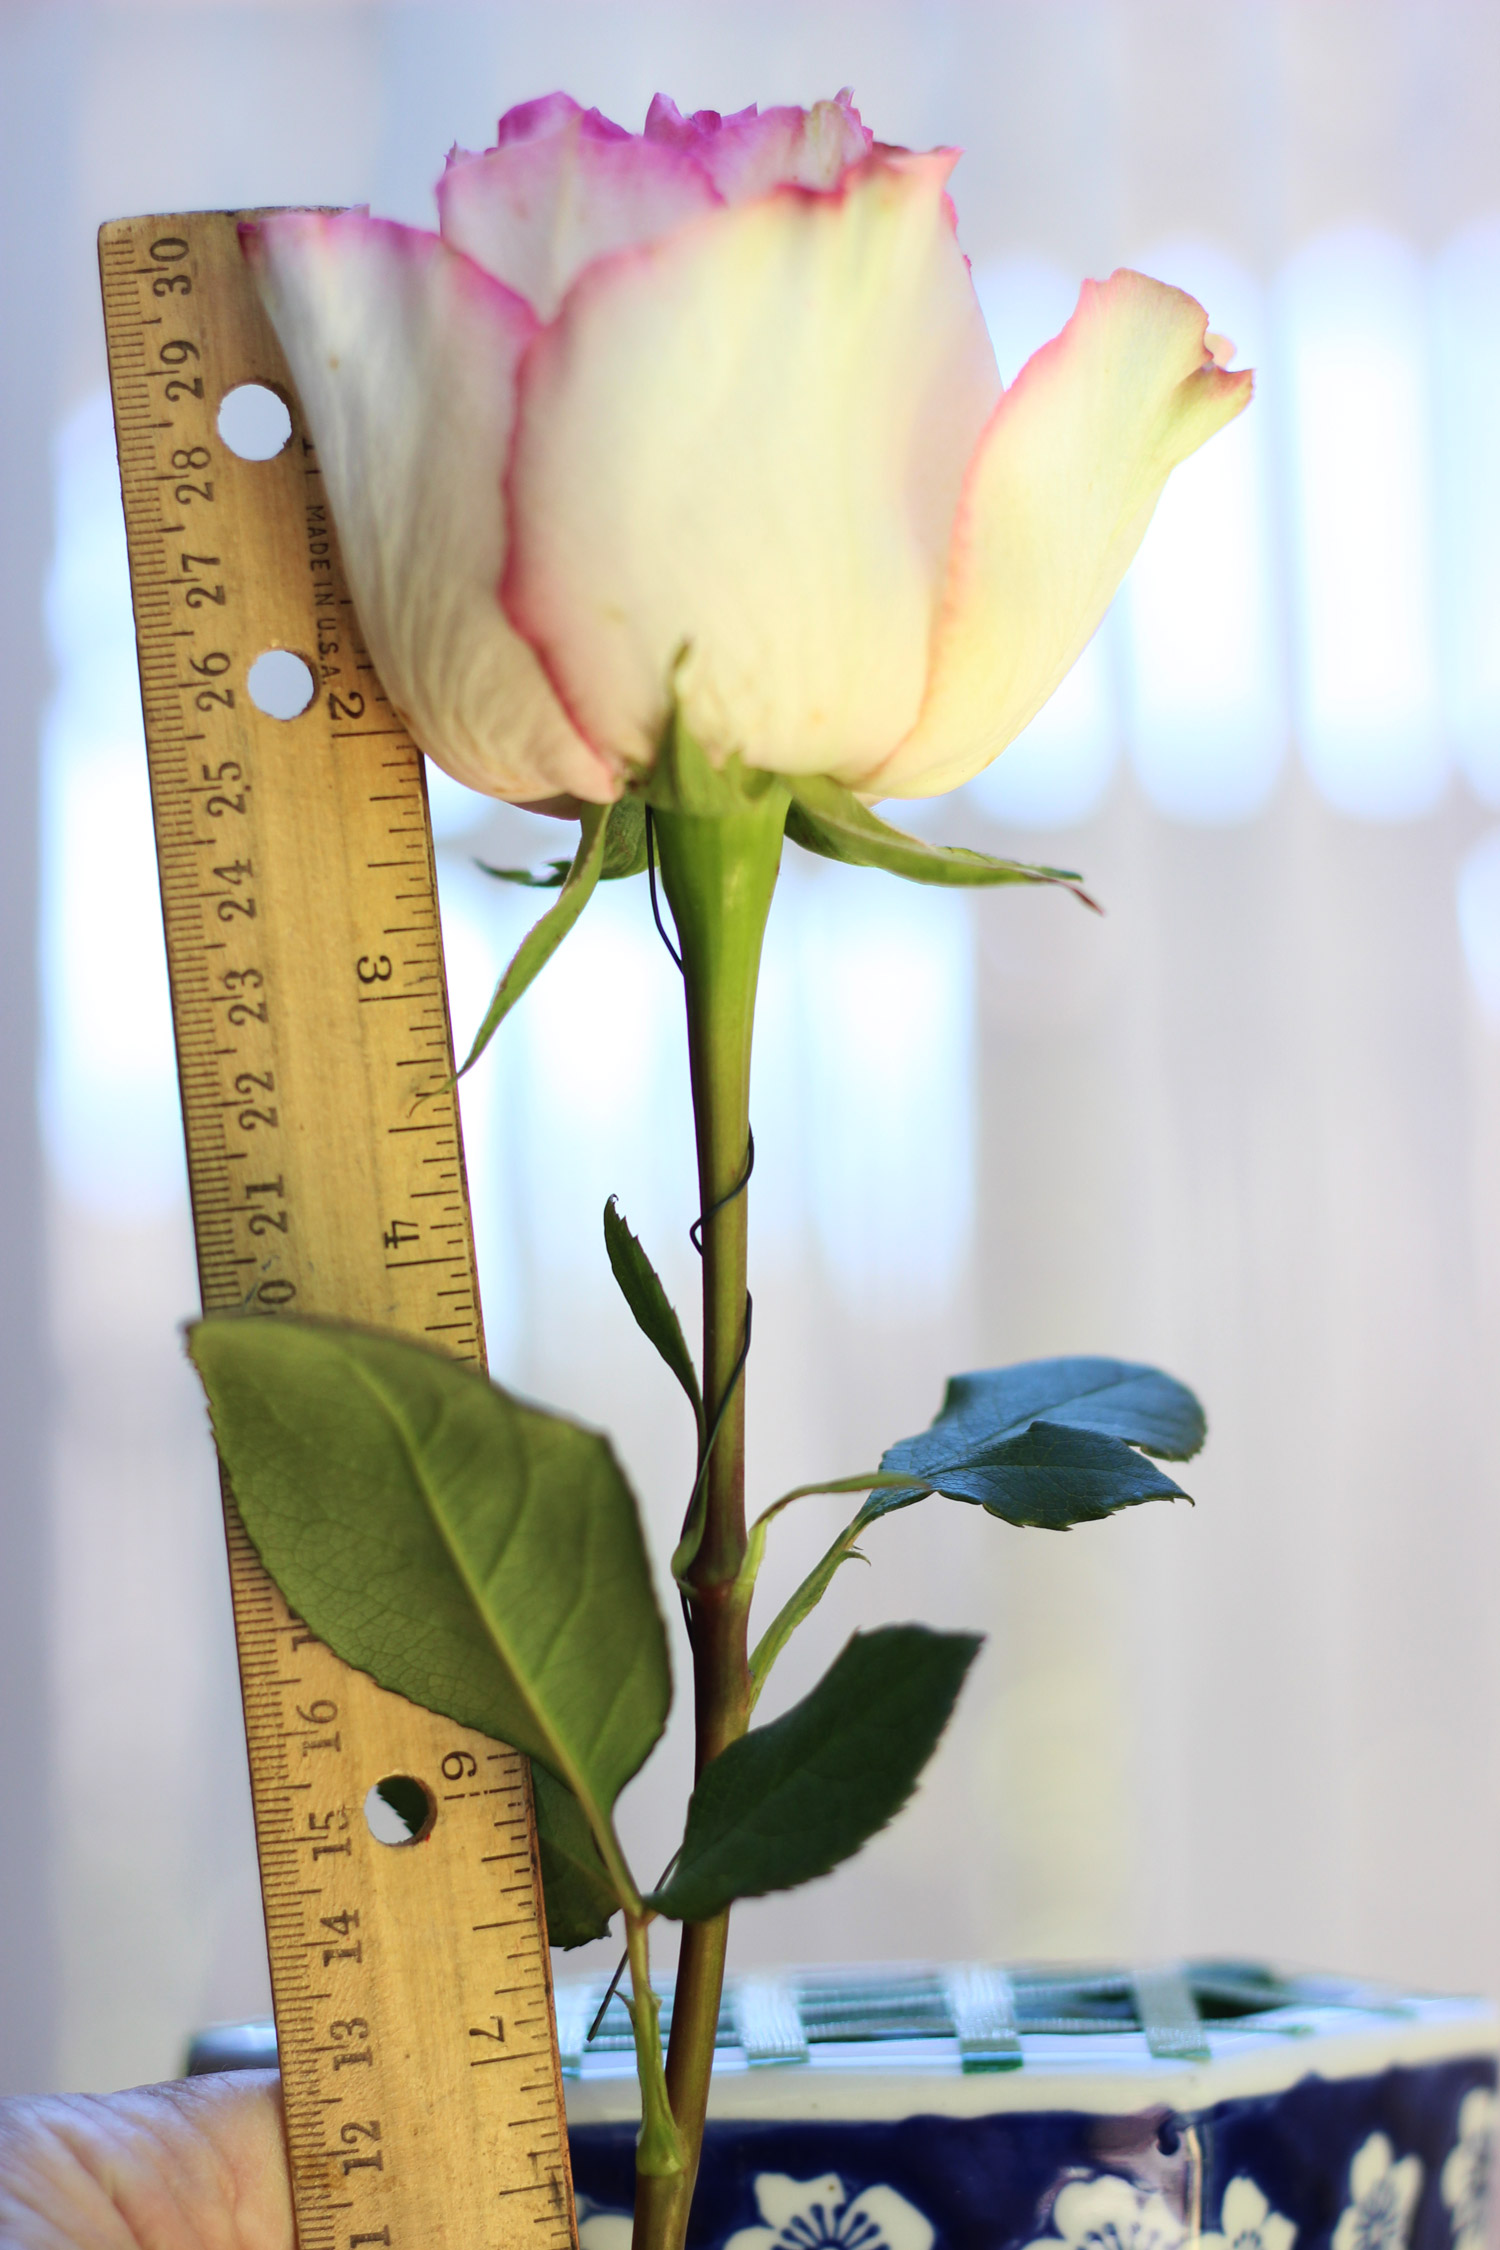 Wire roses. Hold rose up to determine height of middle rose (12 inches).